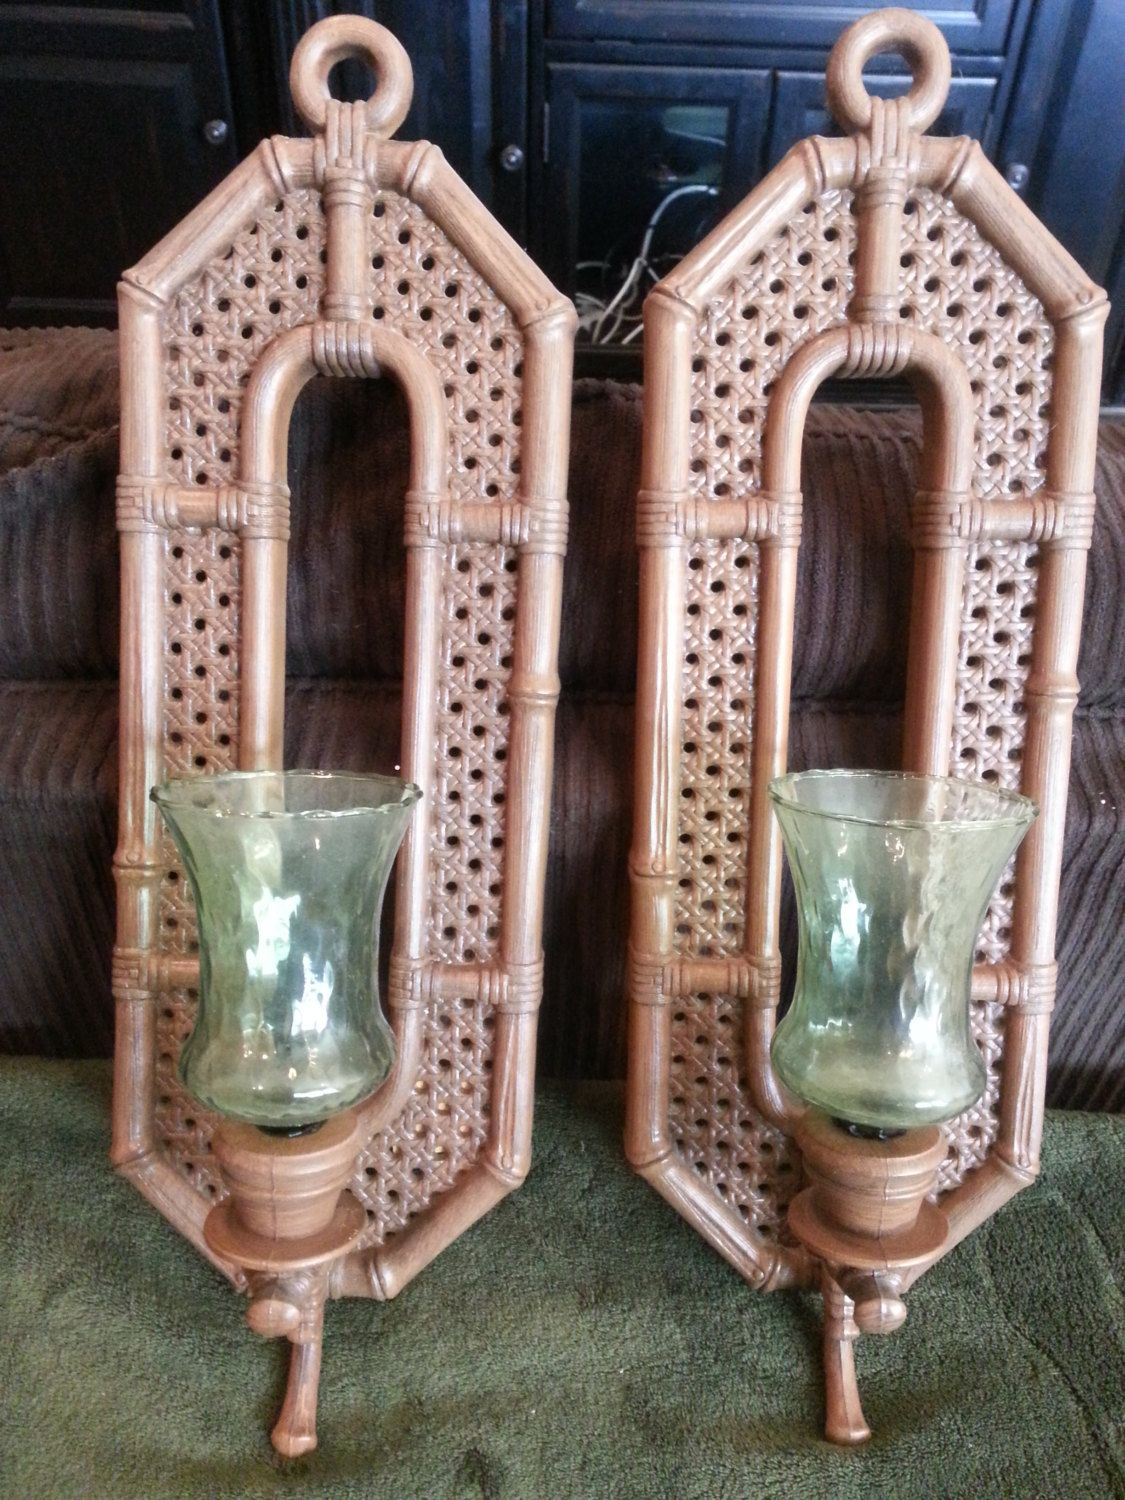 Wall Sconce Set   Burwood Products   Home Interiors   Wicker Look   Vintage  Wall Decor